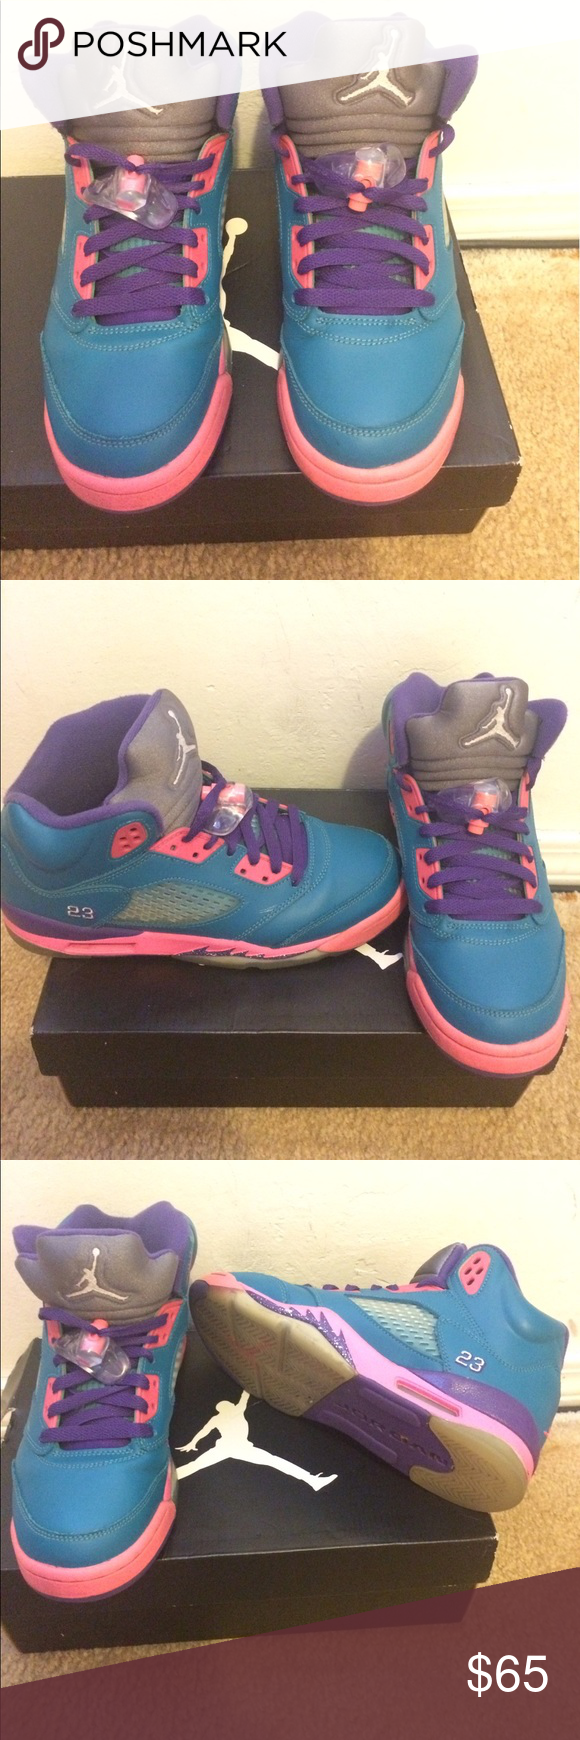 368aa16dfa95 Air Jordan 5 Retro Girls Air Jordan 5 Retro. Tropical Teal White Pink Purple.  Size 5.5 (grade school). Only worn about 5 times. The right shoe has a  little ...